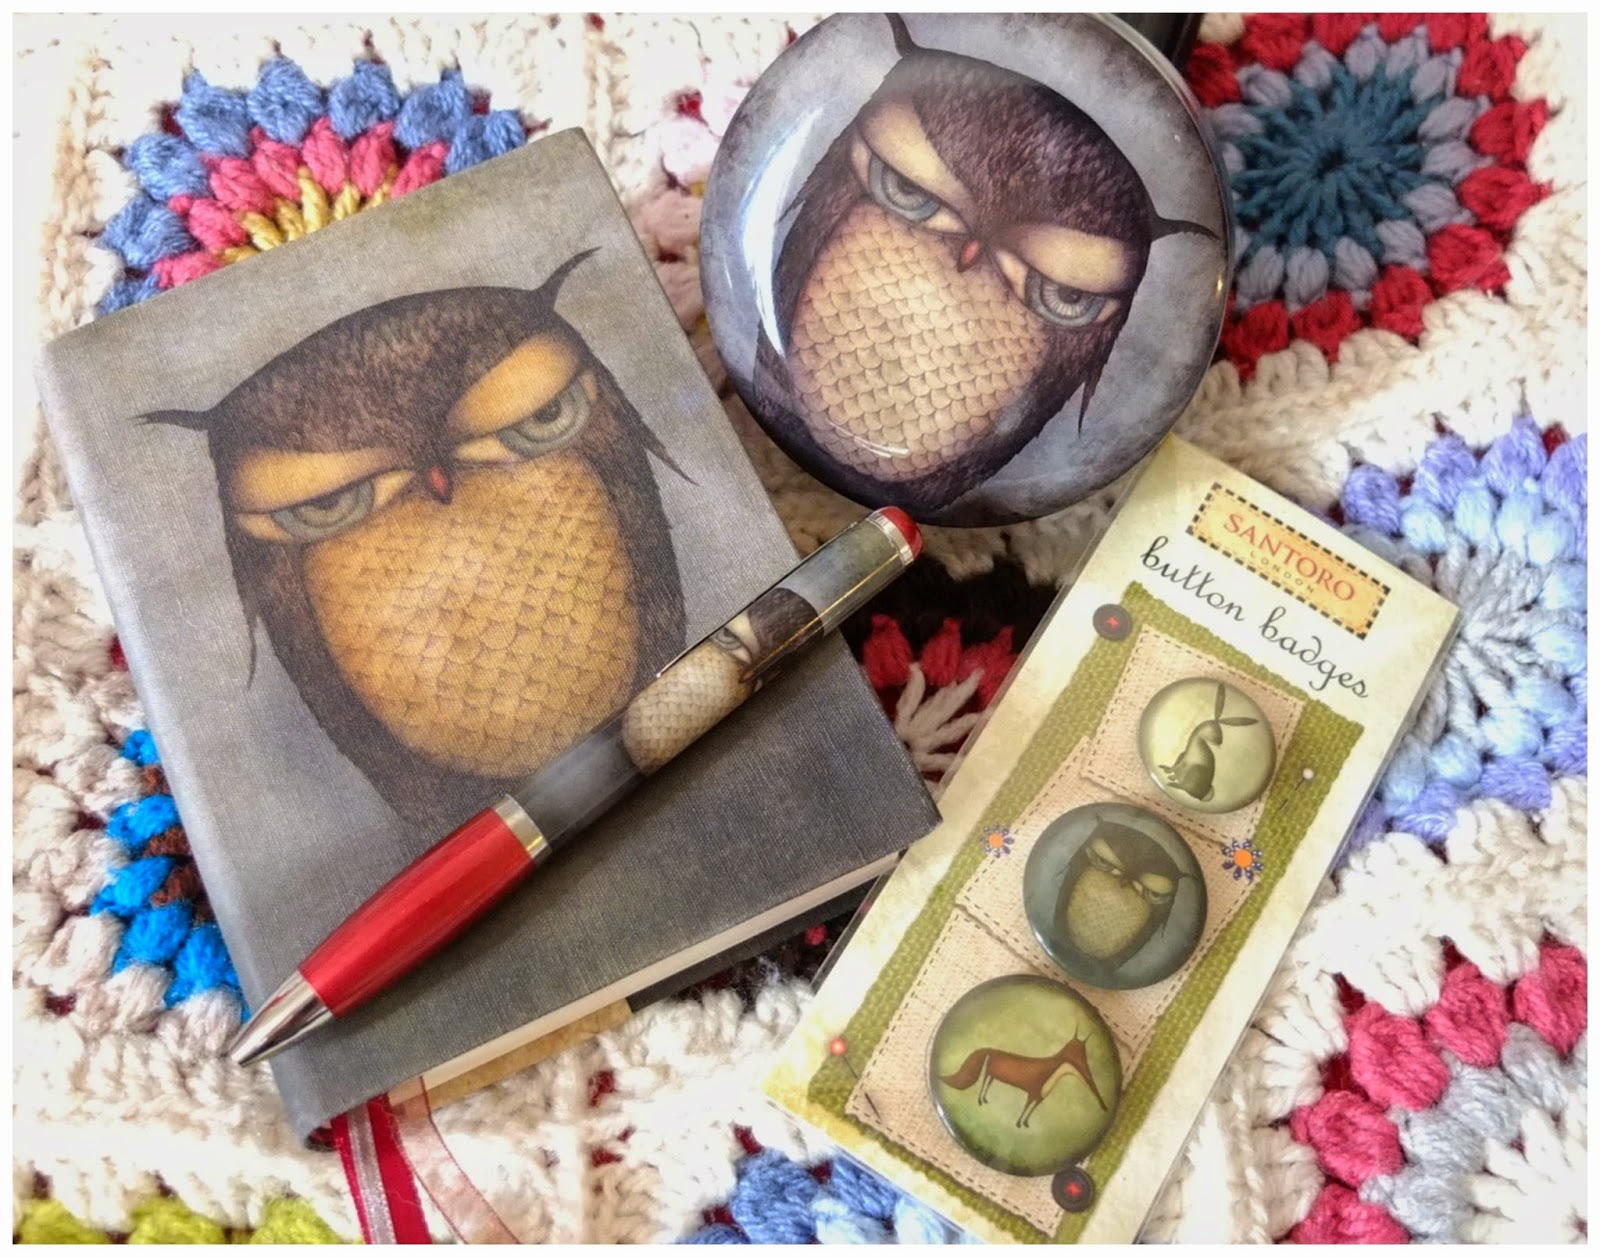 The ideal gift - Grumpy owl stationary from Santoro on Hello Terri Lowe, British lifestyle blog.